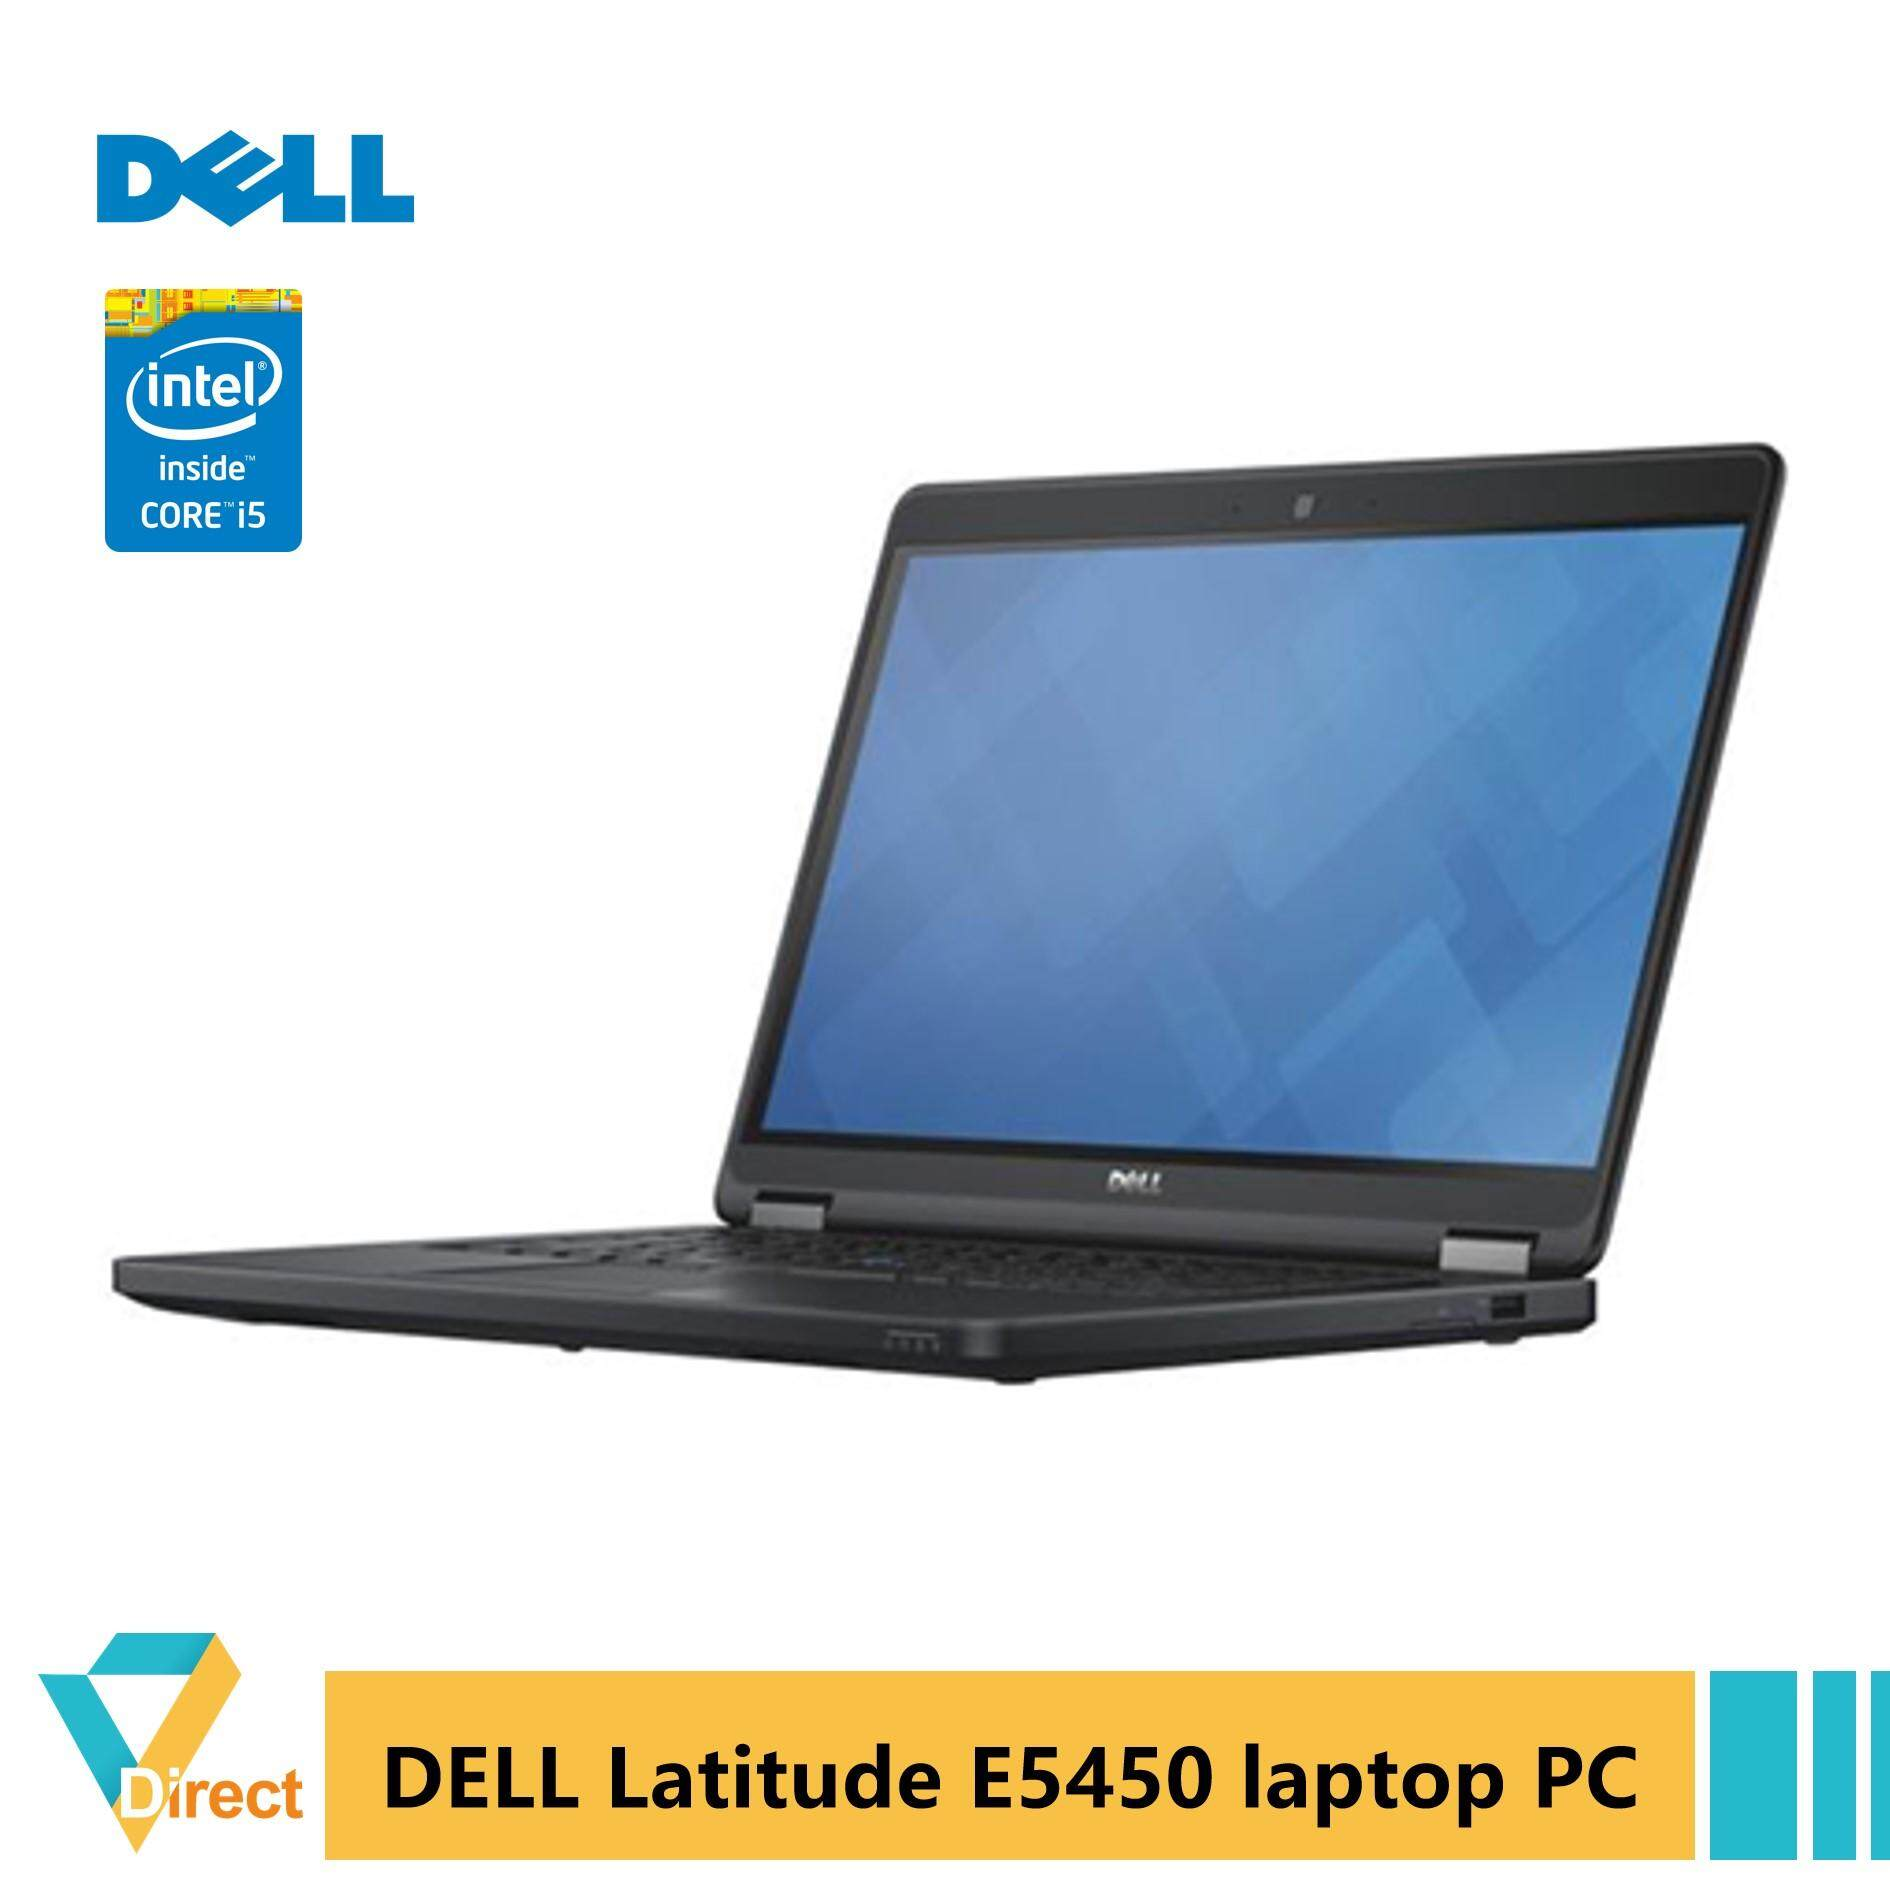 5th GEN Core i5 8GB RAM 240GB SSD Dell 14 5000 series Latitude E5450 laptop PC Ultrabook - FULLY refurbished Vs Acer Asus HP Lenovo Malaysia